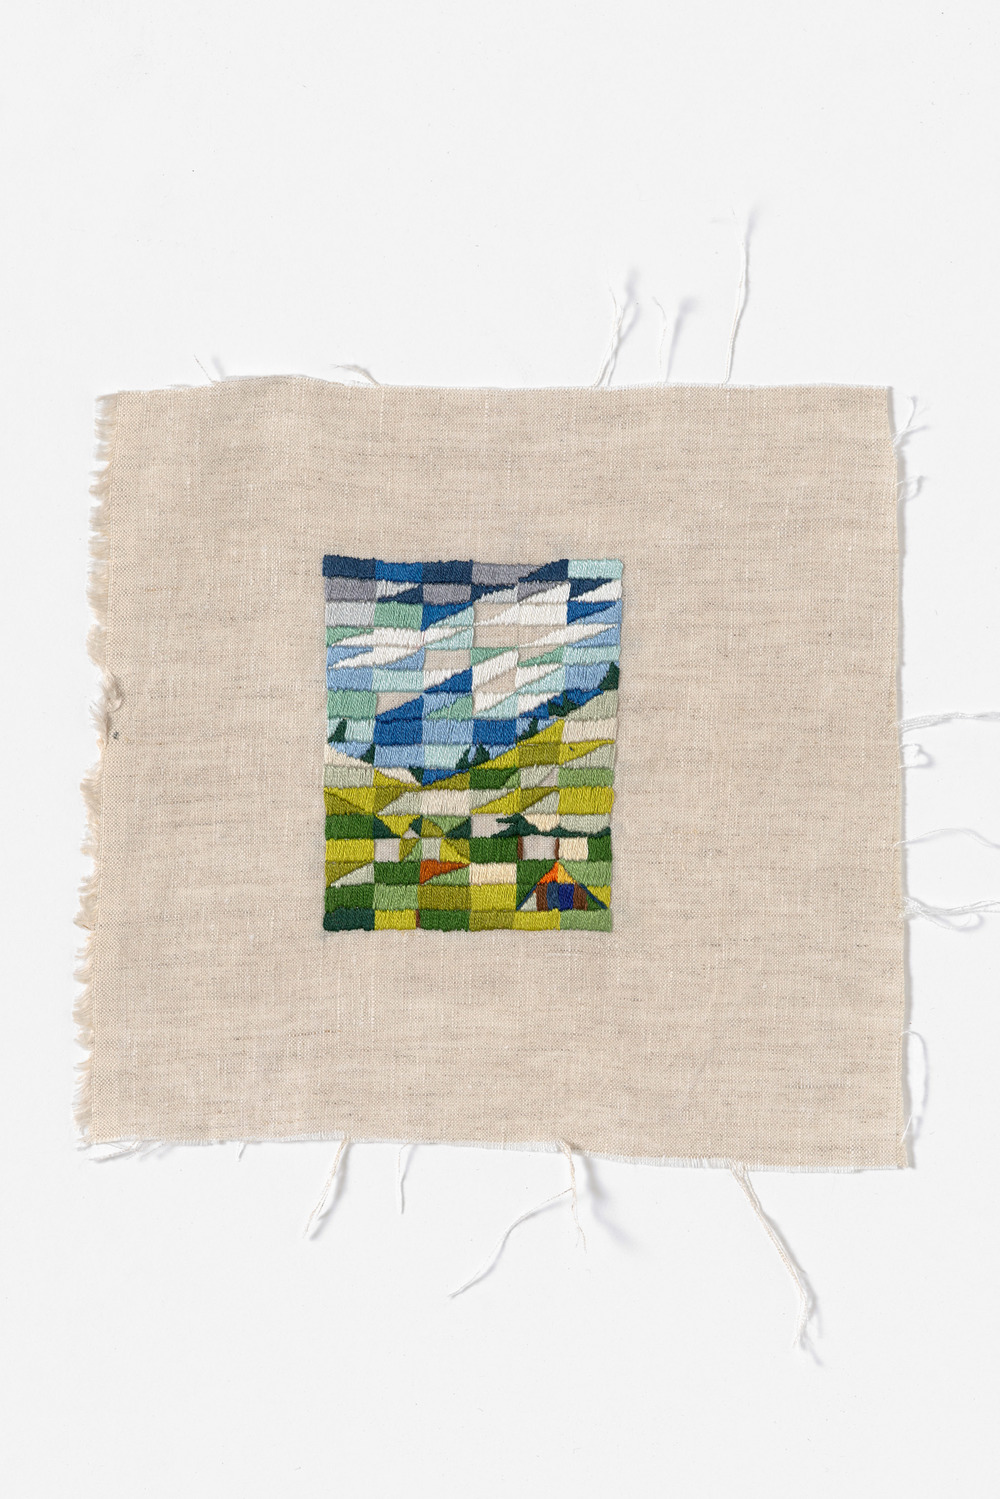 Glen Forbes 2014 Cotton thread on linen 23 x 21cm